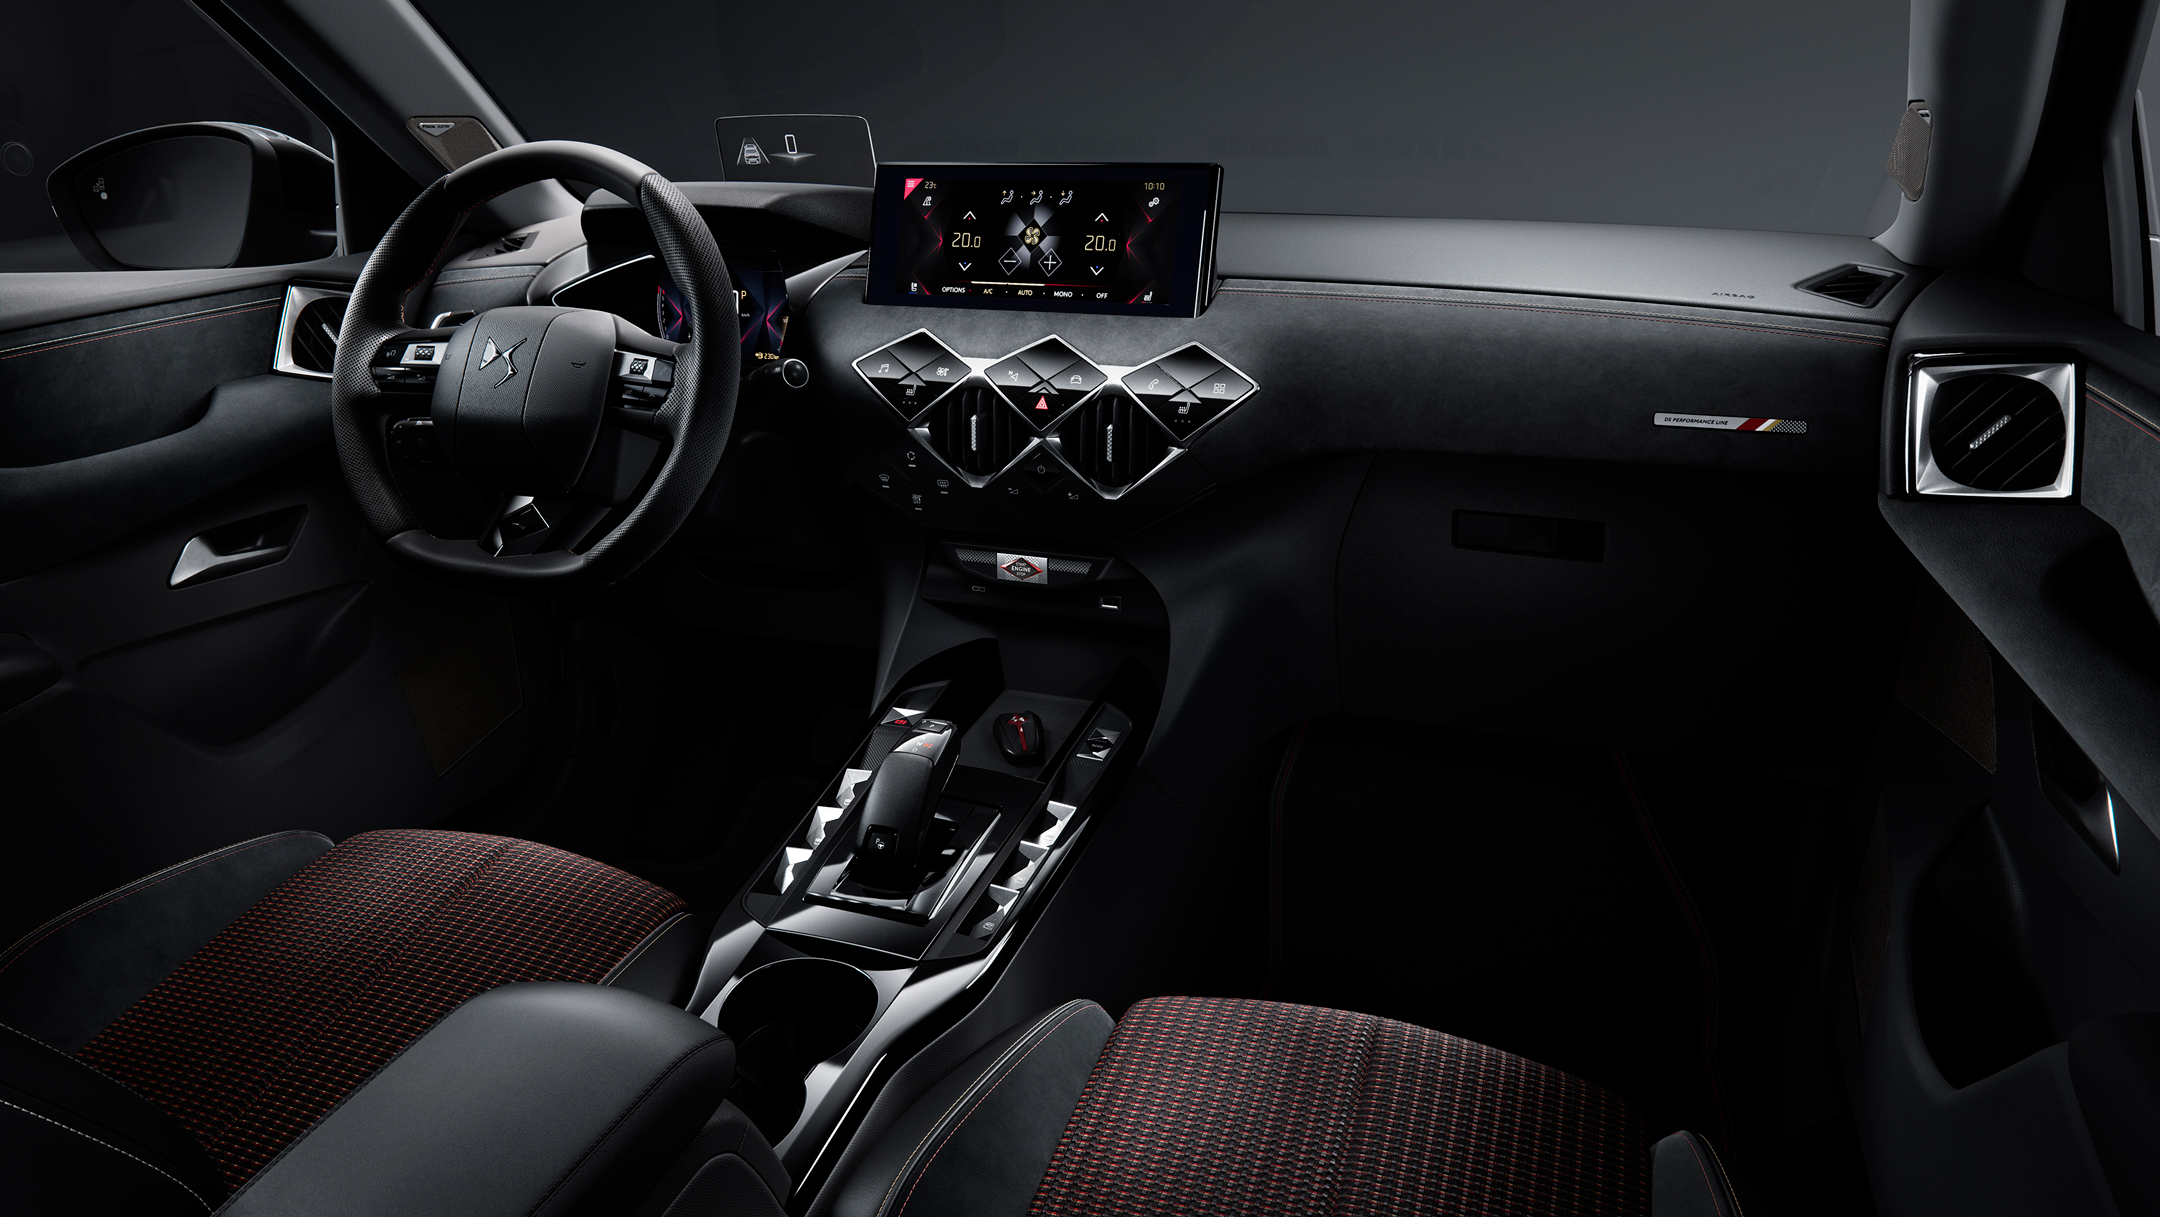 DS 3 Crossback - 2018 - interior / intérieur - DS Performance Line